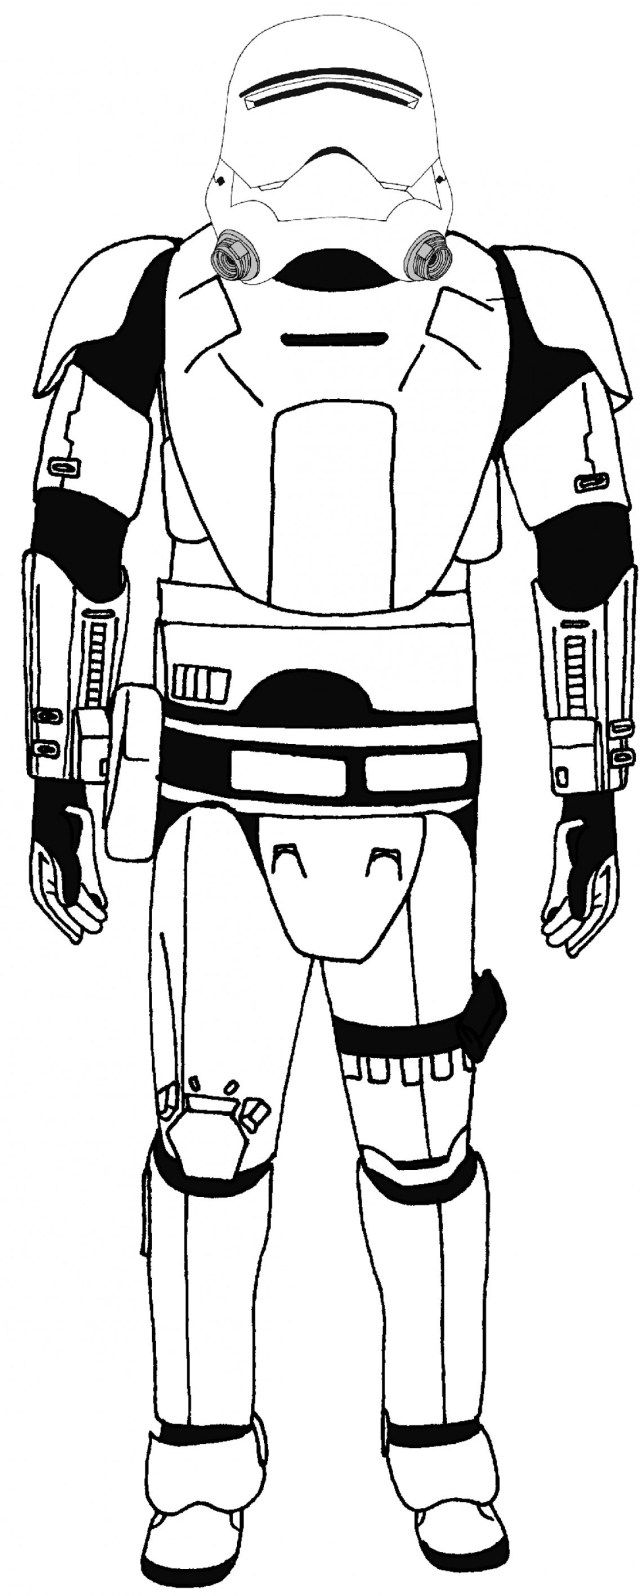 27 Inspiration Picture Of Stormtrooper Coloring Page Entitlementtrap Com In 2020 Stormtrooper Star Wars Stormtrooper Art Coloring Pages